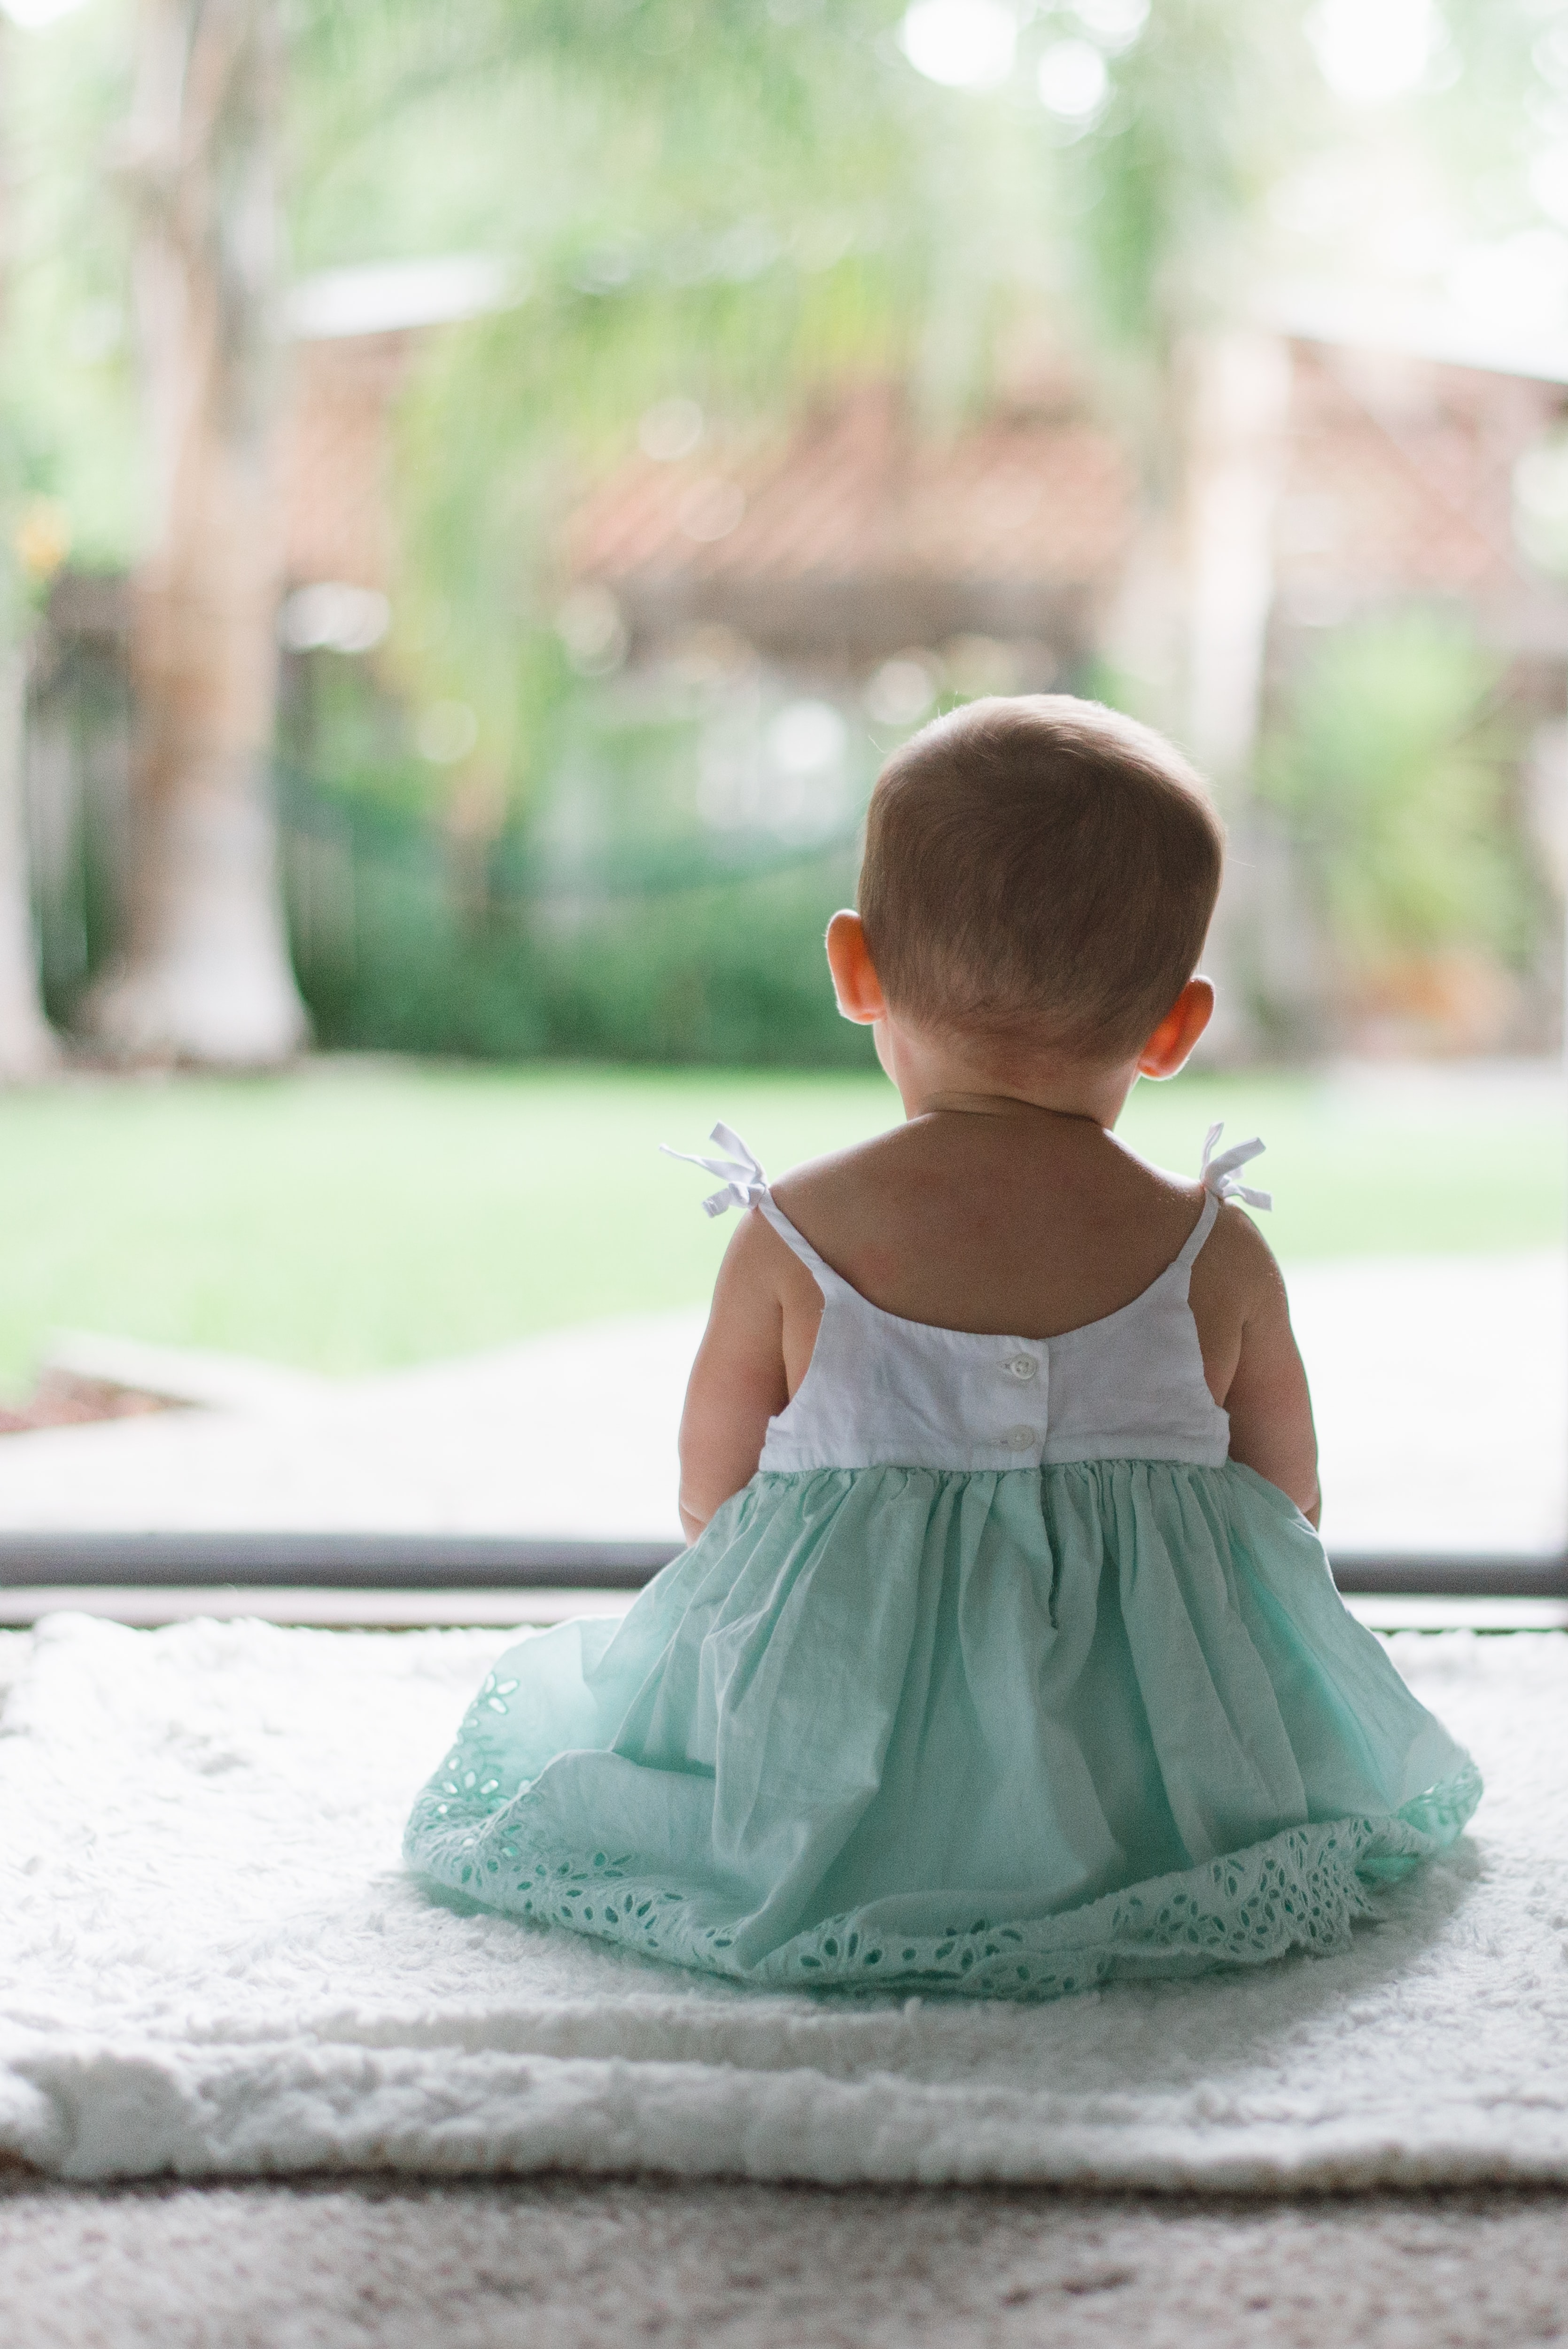 selective focus photo of toddler wearing sleeveless dress sitting on floor